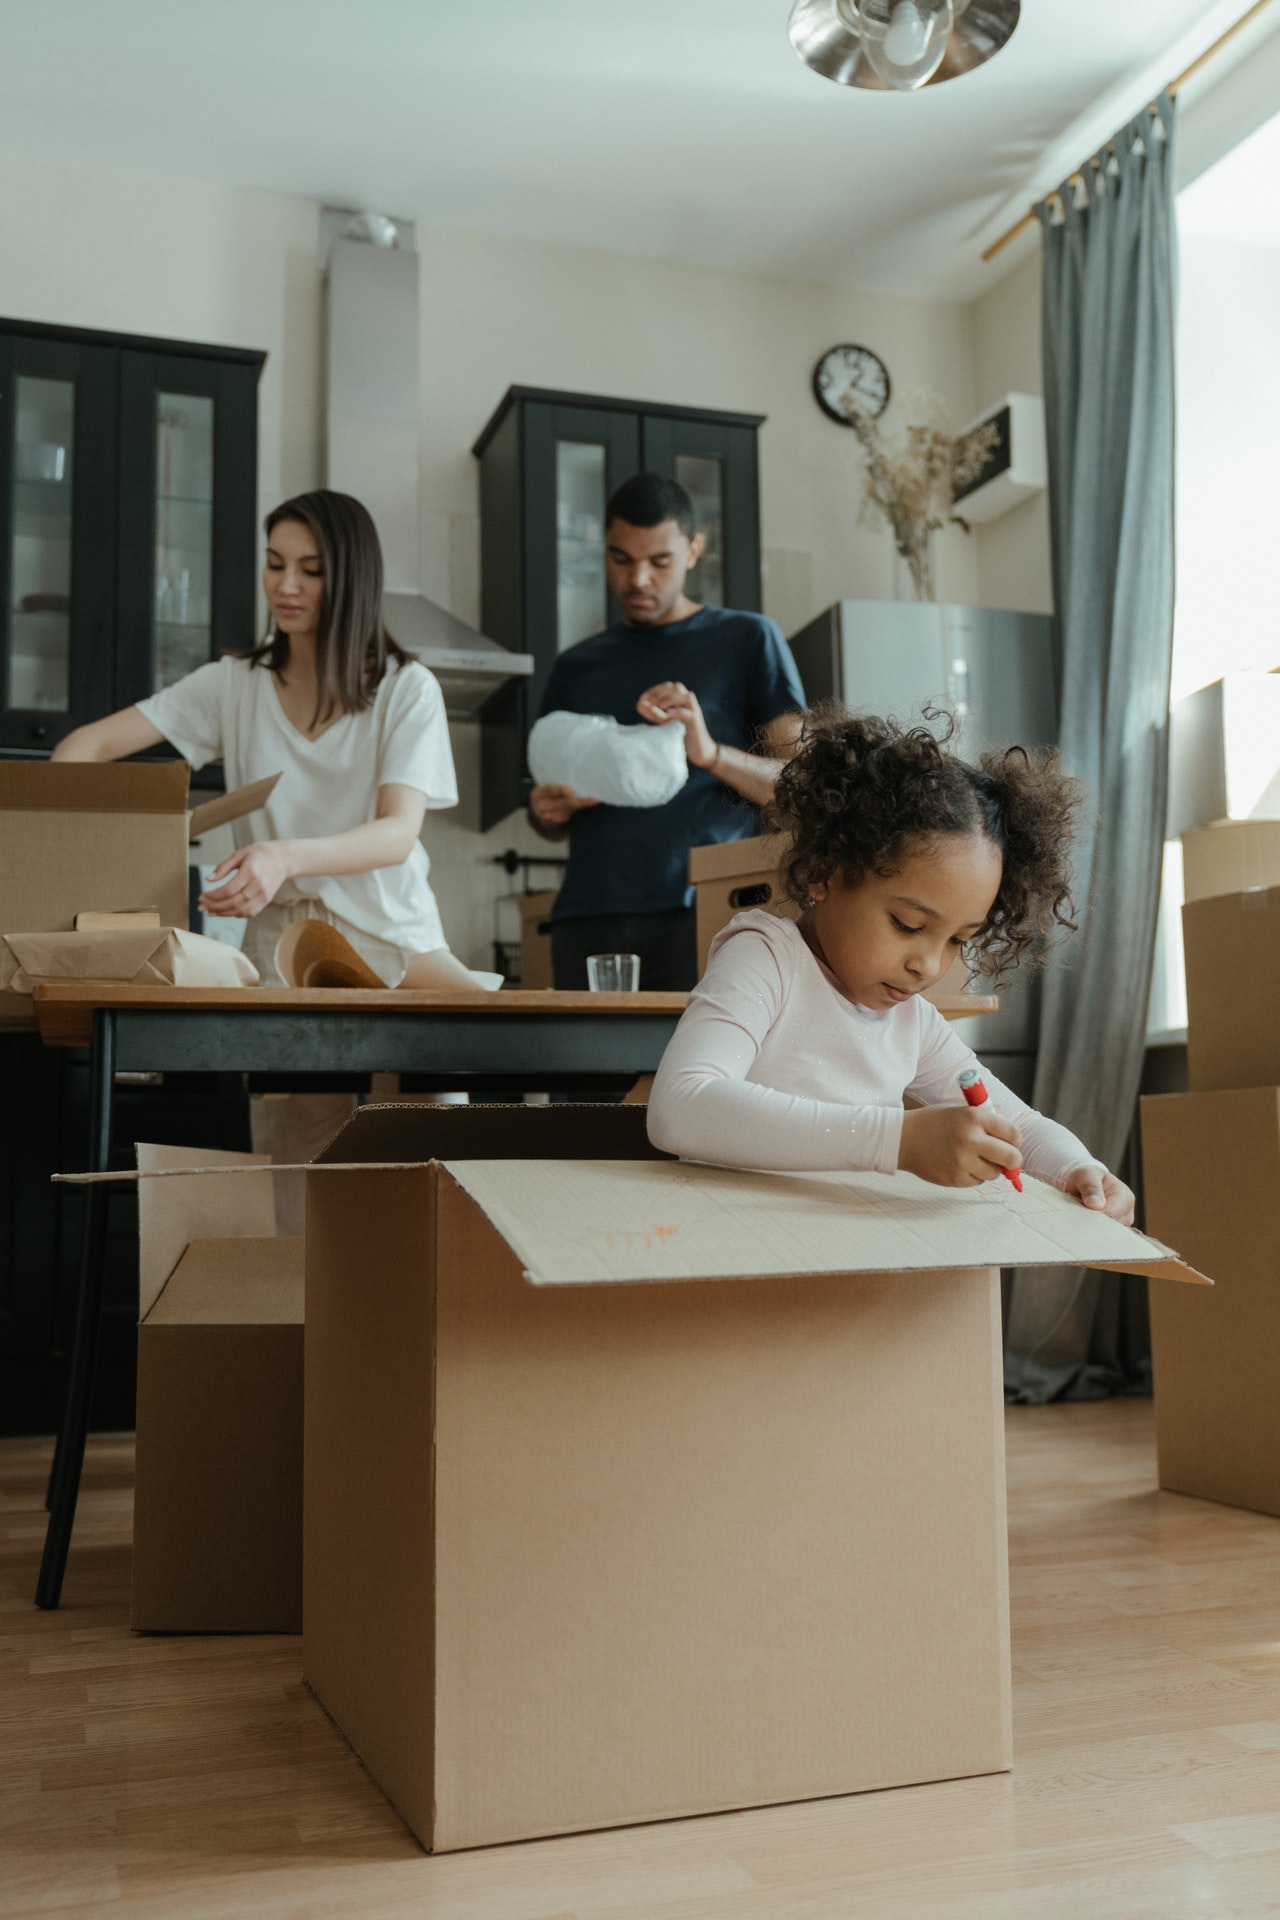 Finding The Right Family Home